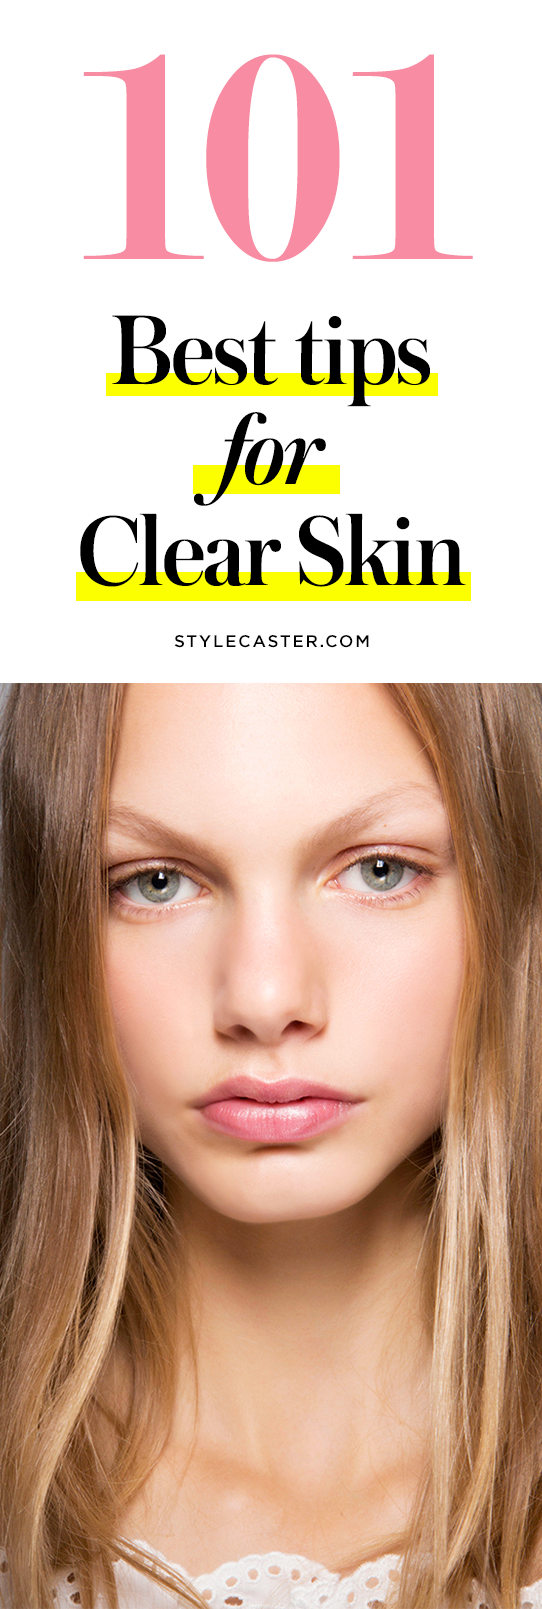 9 Best Tips for Clear Skin  StyleCaster